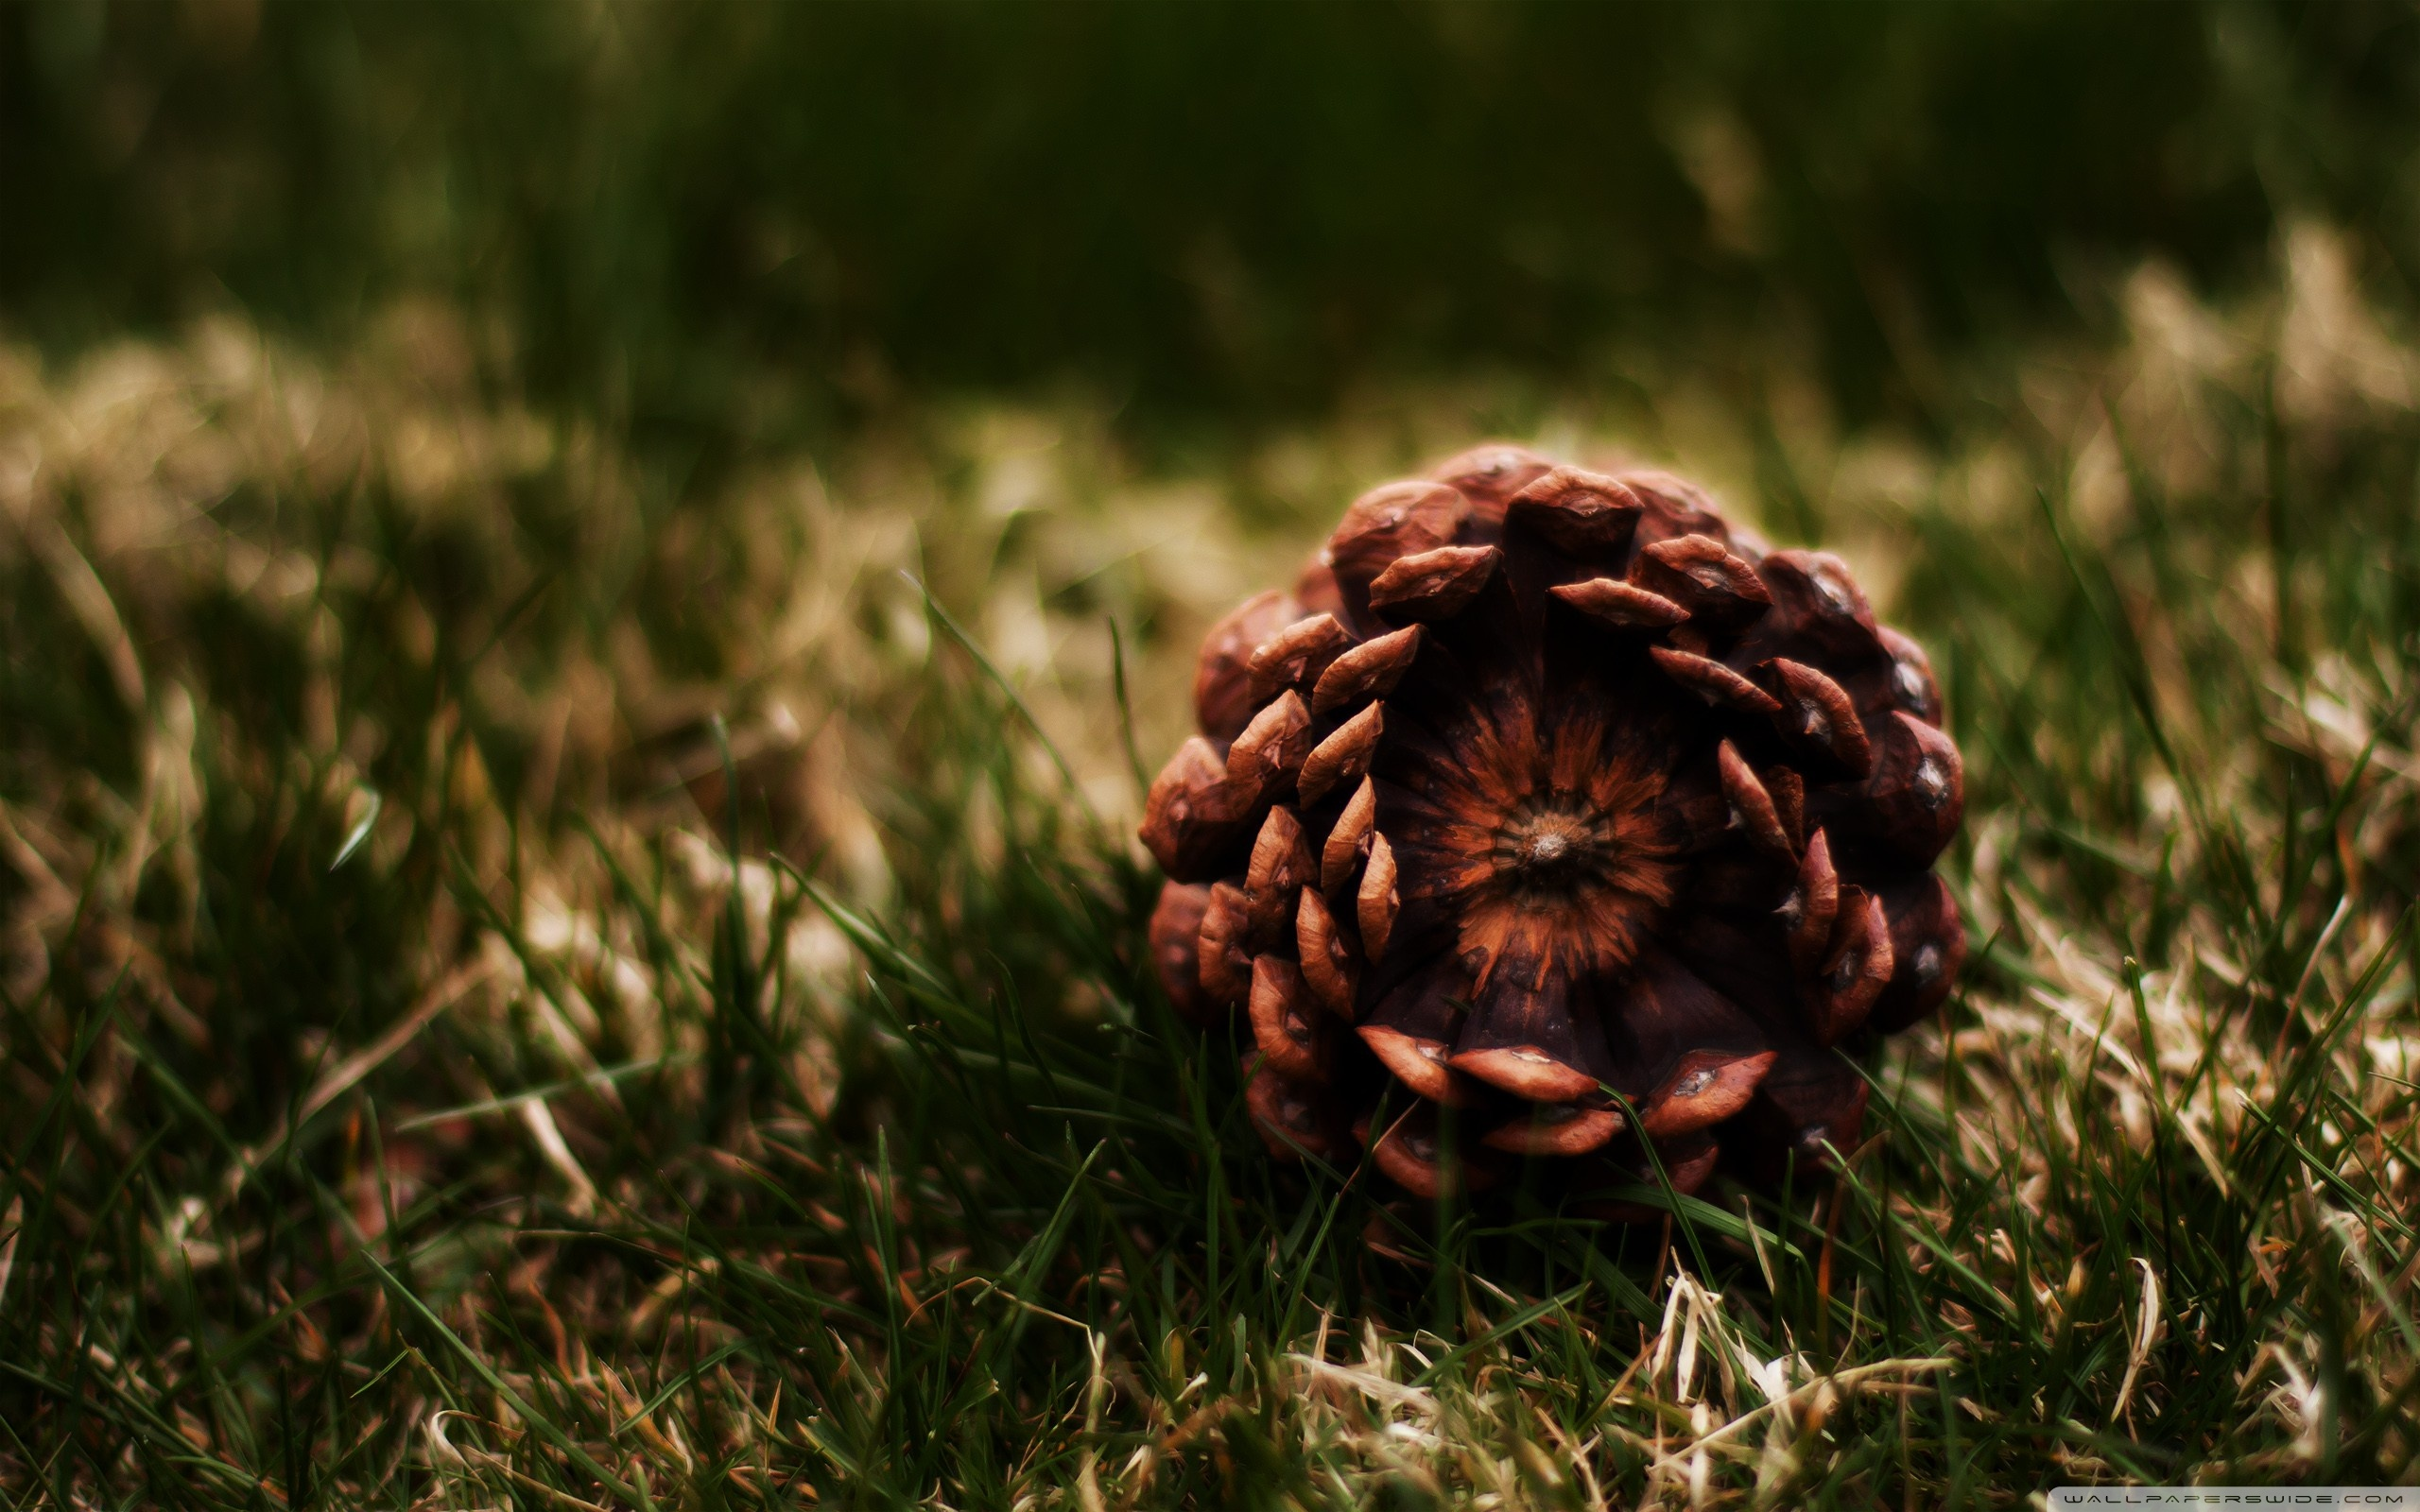 Pinecone wallpaper 2560x1600 5981 for Pinecone wallpaper